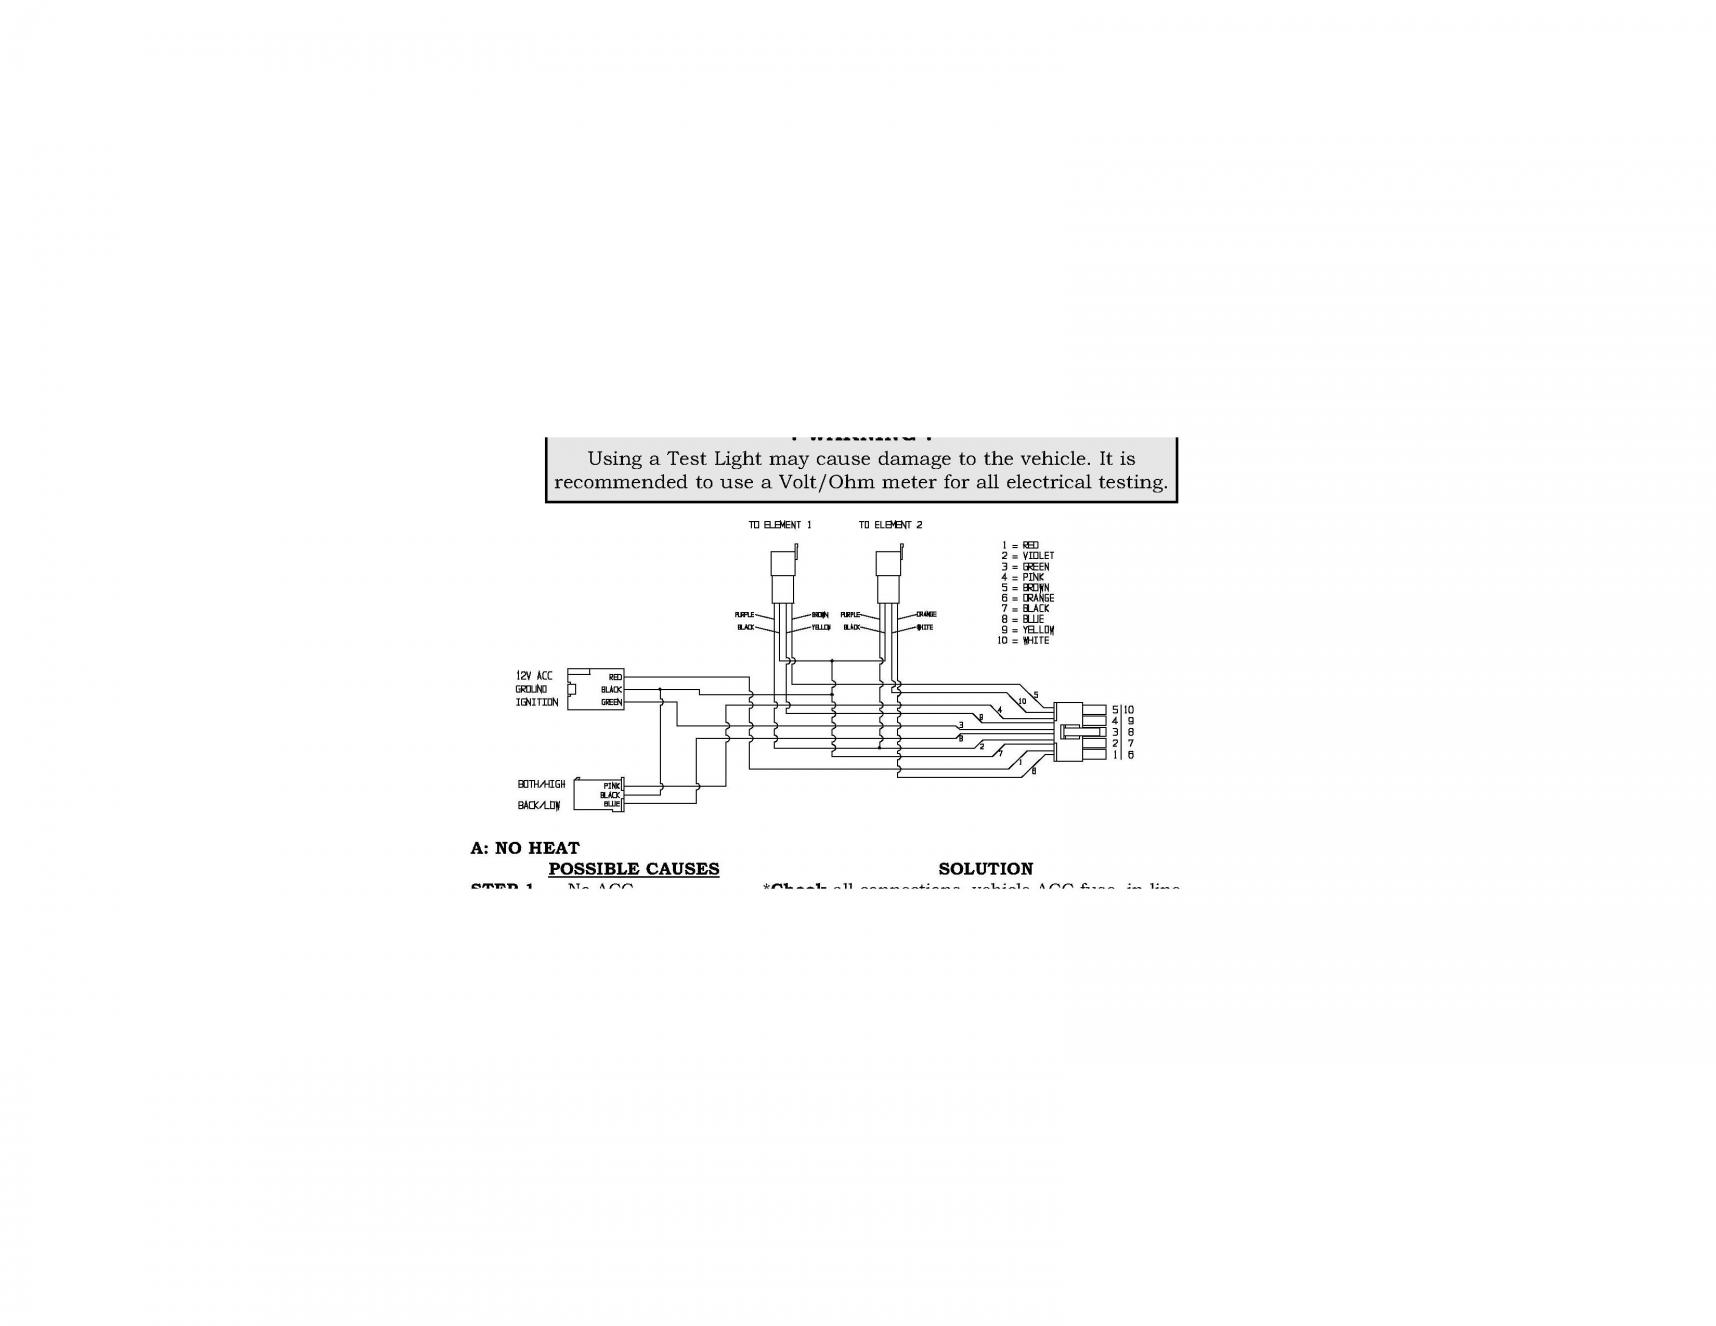 Fj Cruiser Trailer Wiring Diagram Solutions 2007 Heated Seat Example Electrical